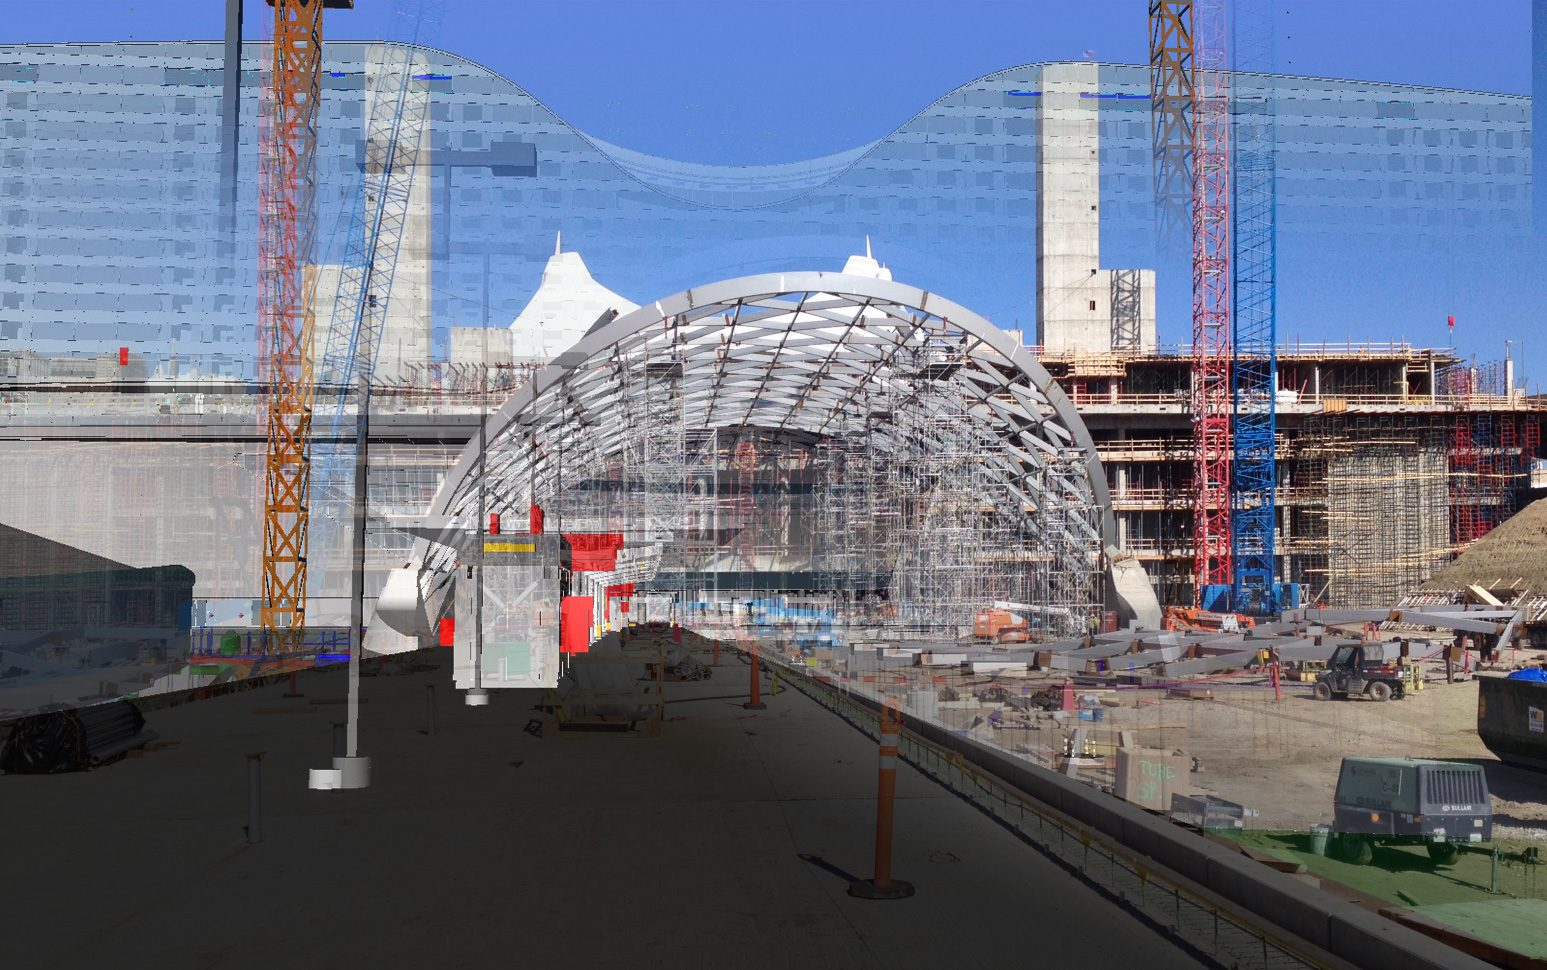 With the concrete for the platform in place, this model/photo composite provides context for the completed structure. Note that the stairwells provide a reference point for the completed height. This vantage point is also where the first few minutes of the accompanying video were shot. Credit: William Lineberry, Design Technology Manager, HNTB